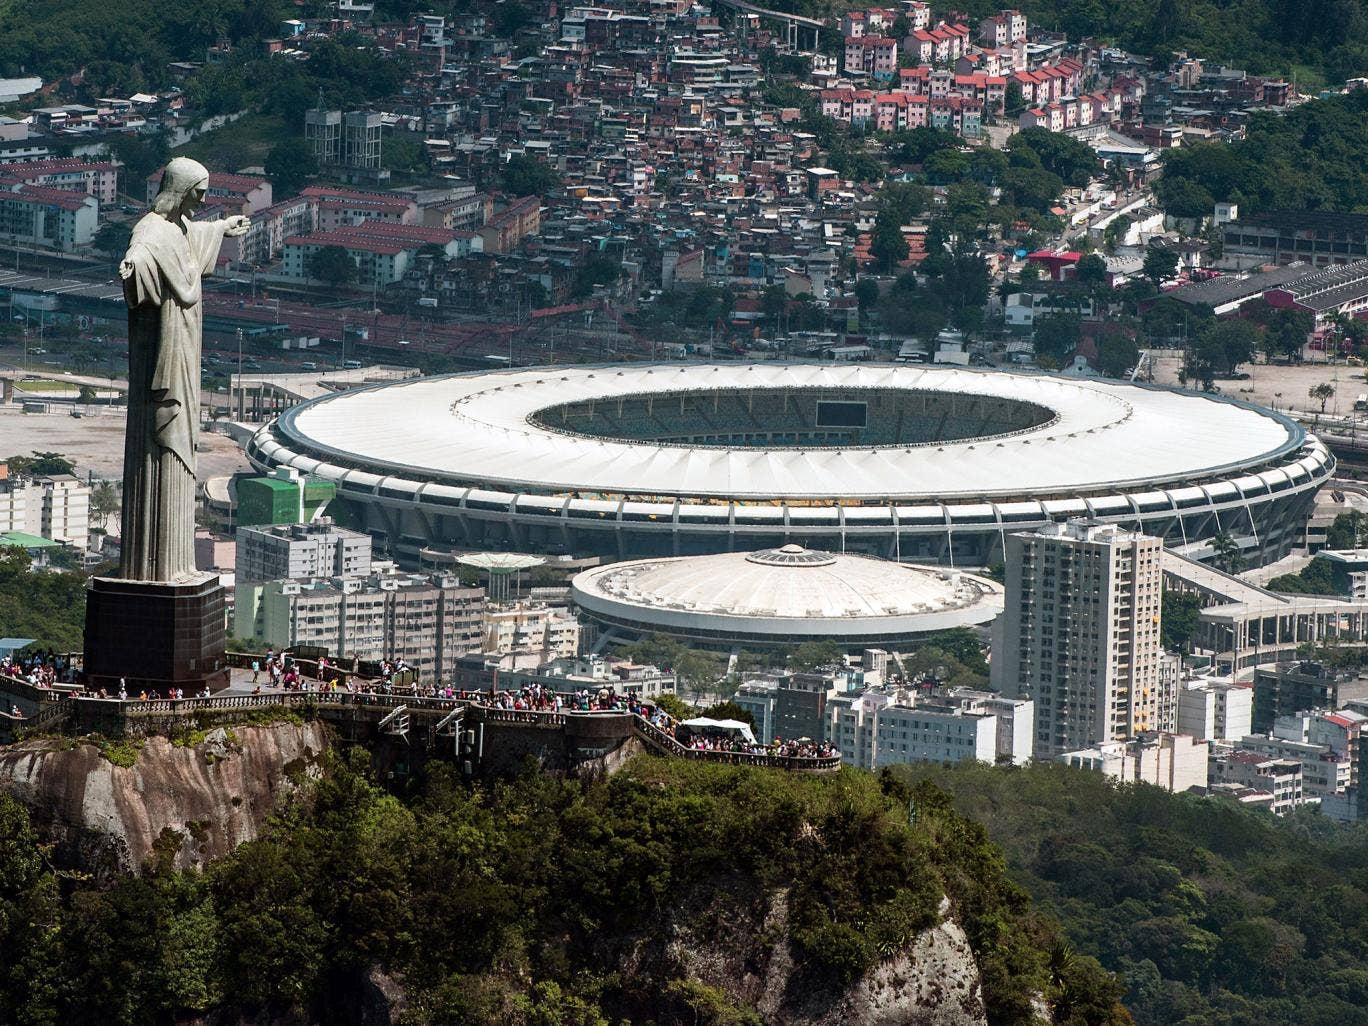 Aerial view of the Christ the Redeemer statue atop Corcovado Hill and the Mario Filho (Maracana) stadium in Rio de Janeiro, Brazil, on December 3, 2013.